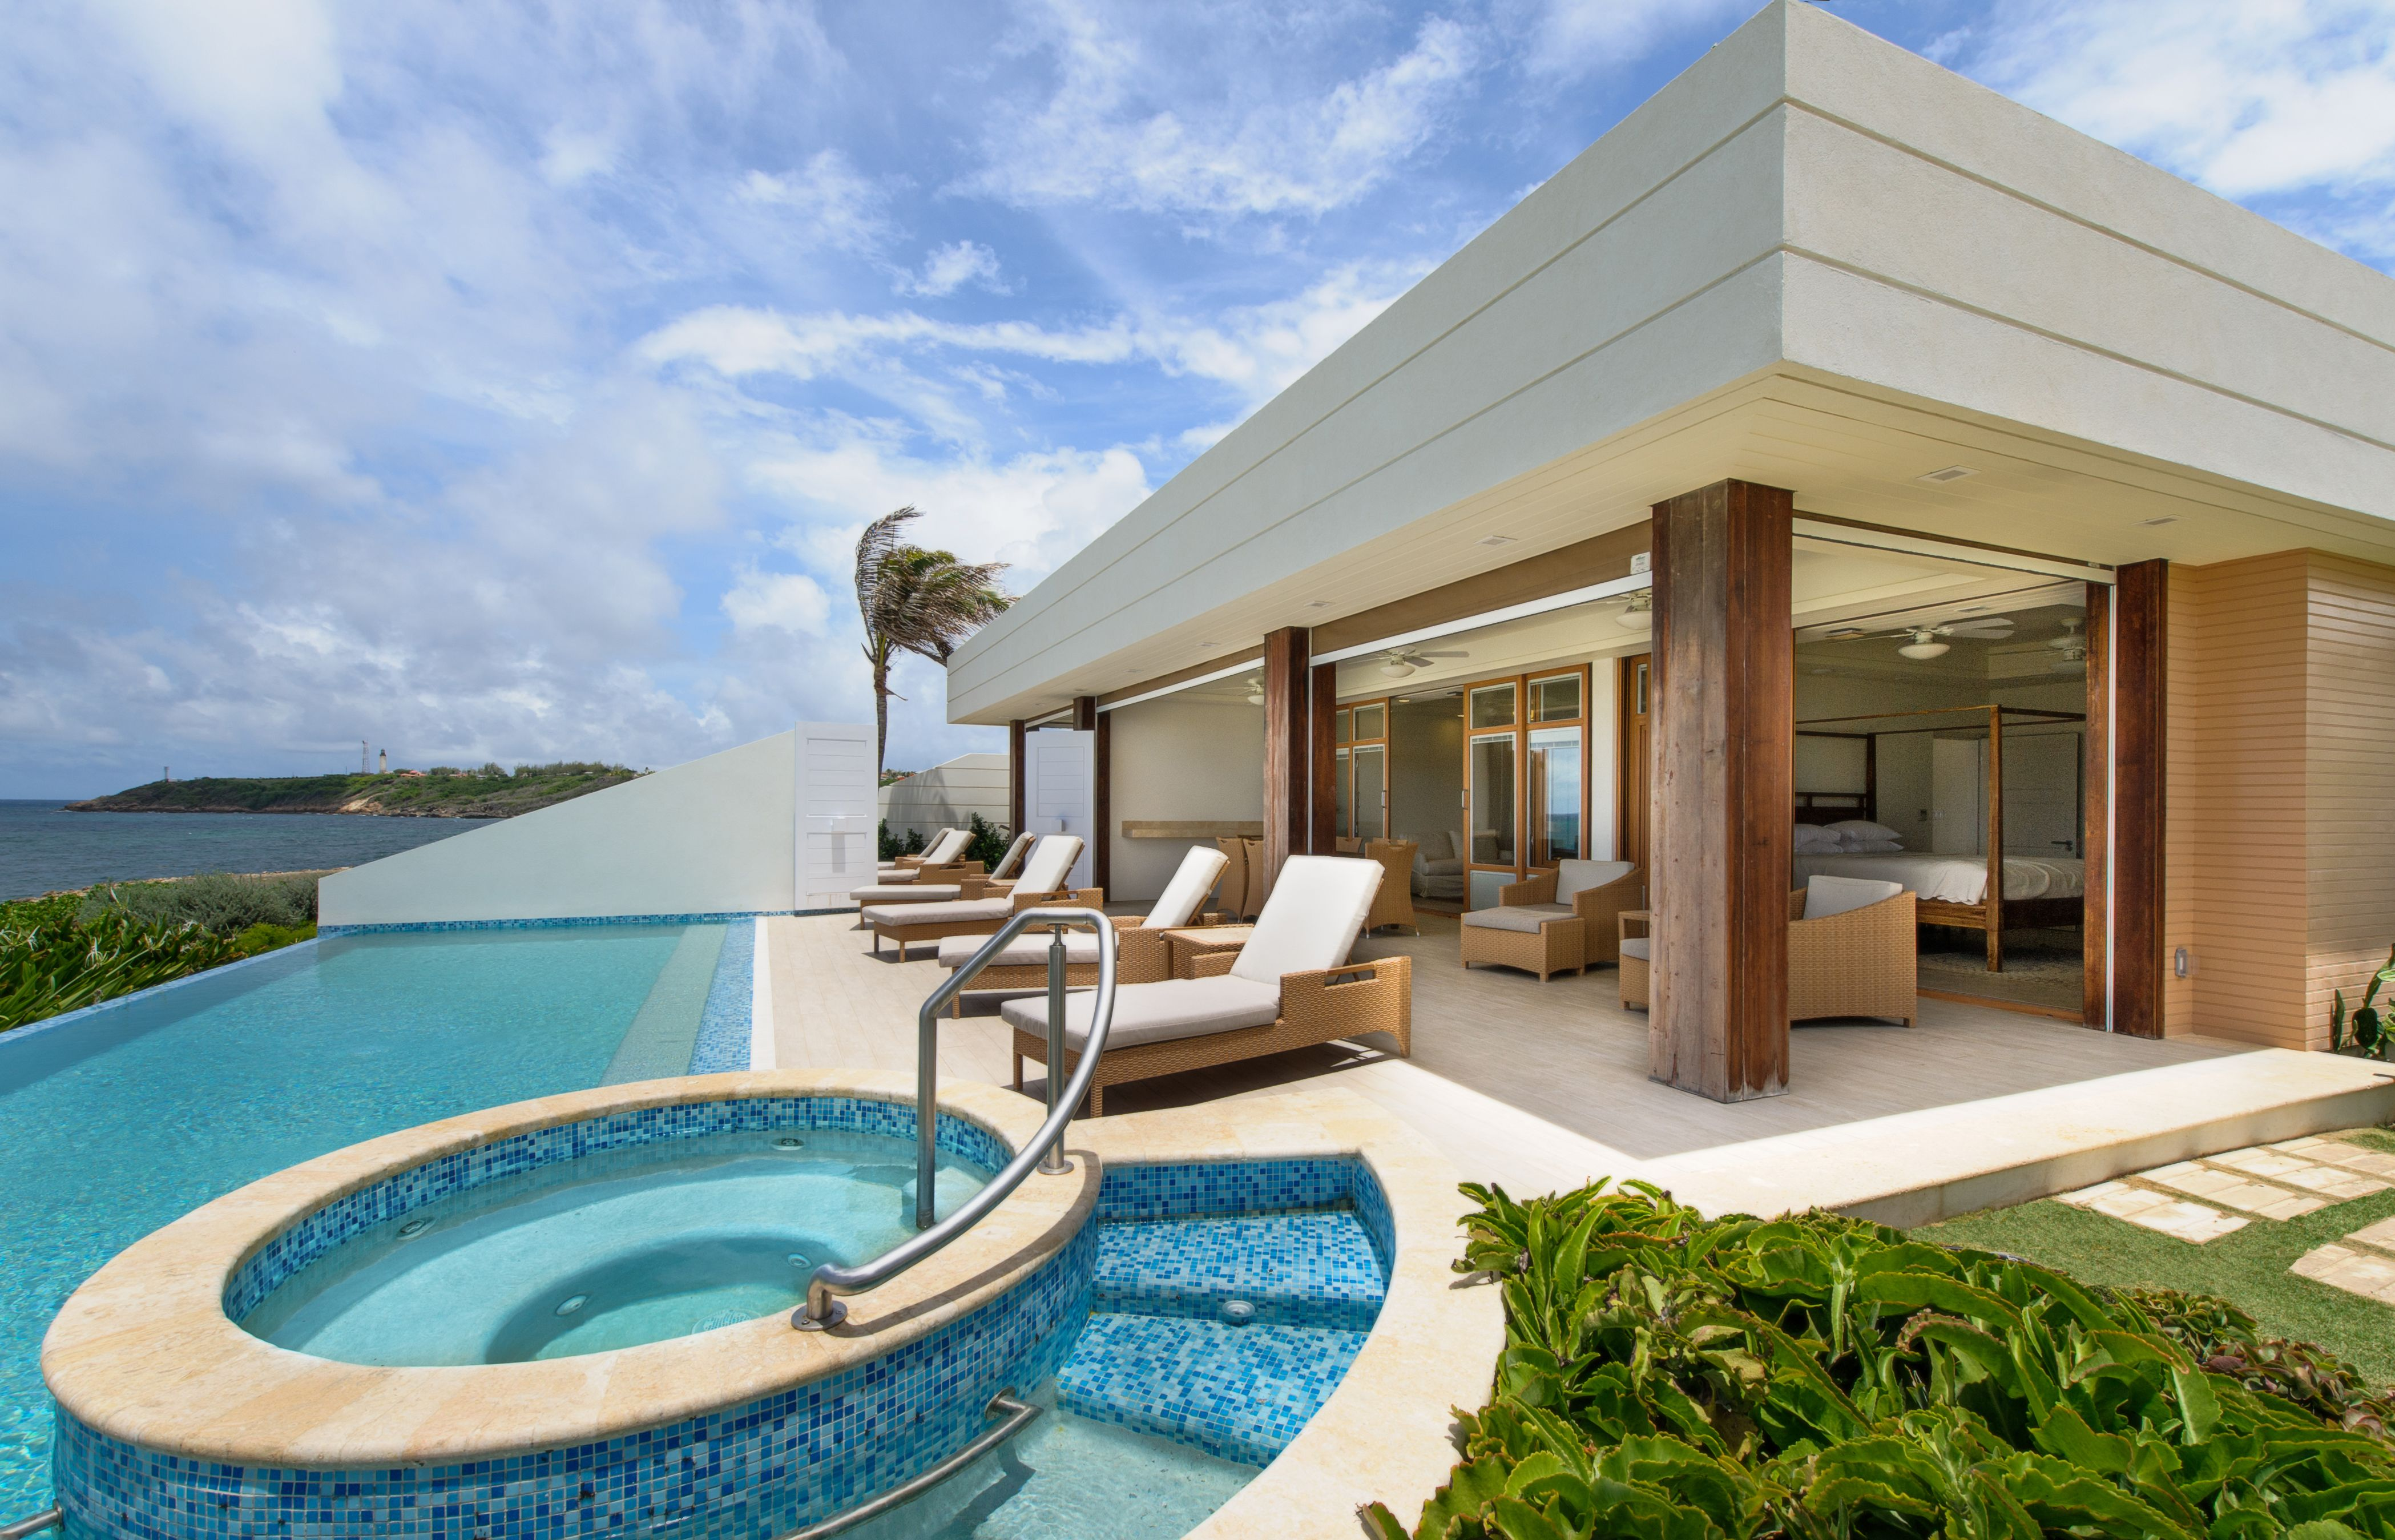 2 Bedroom Villas for Sale Beach Houses Barbados  Rental